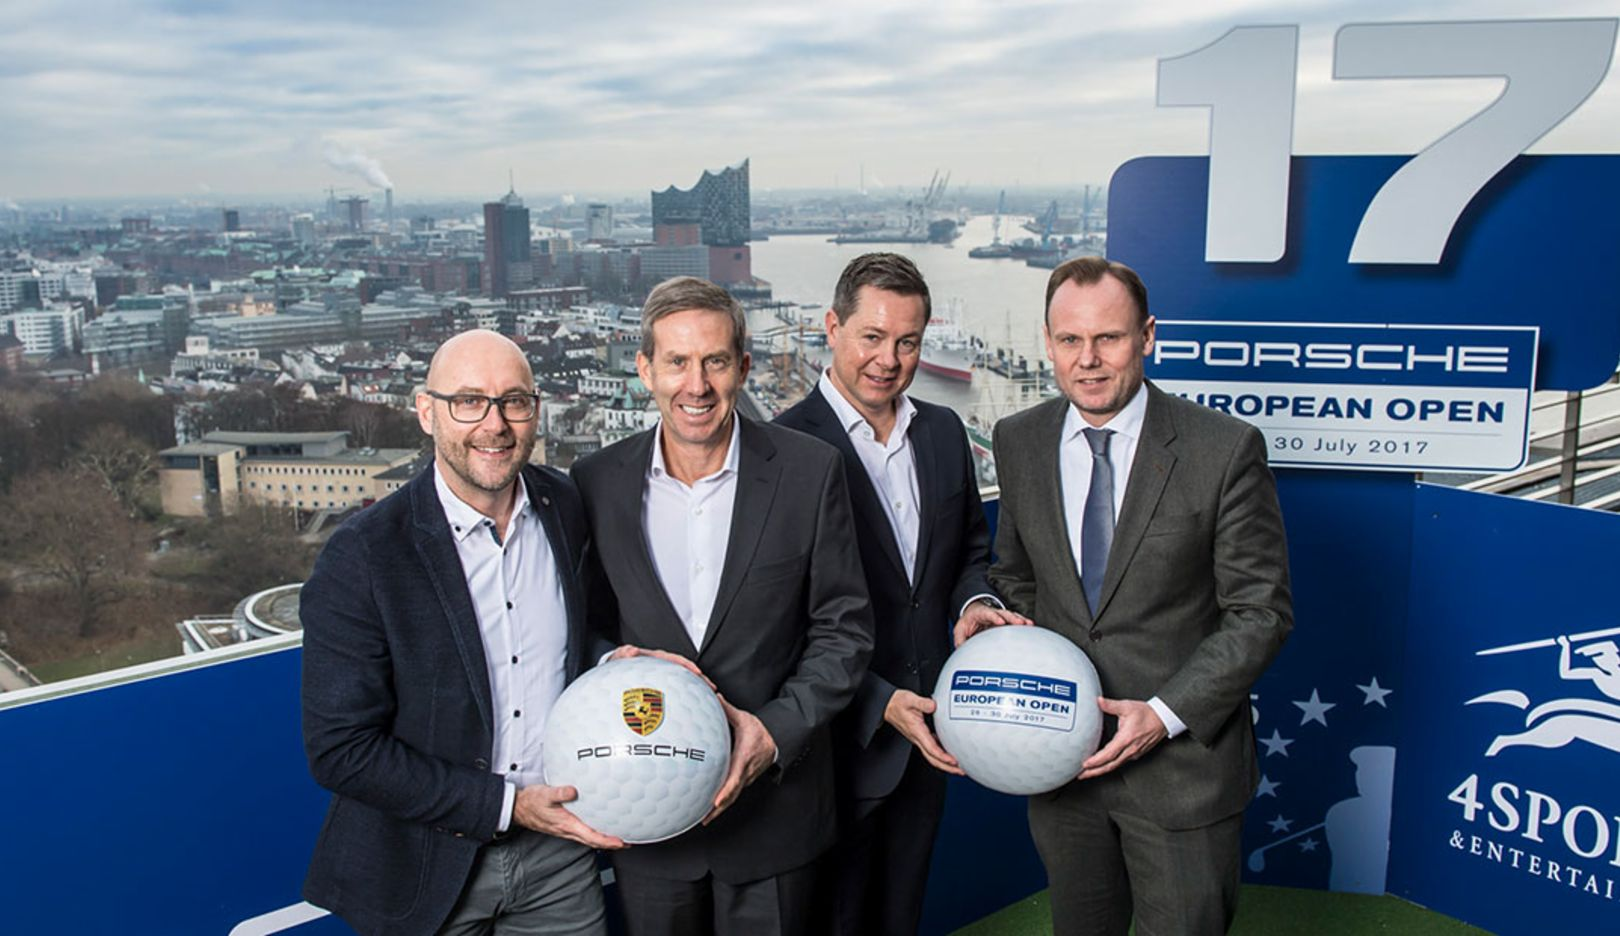 Oliver Eidam, Porsche AG, Keith Waters, European Tour, Tournament Director Dominik Senn, 4sports, and Hamburg's Sports Senator Andy Grote, l-r, Hamburg, 2016, Porsche AG